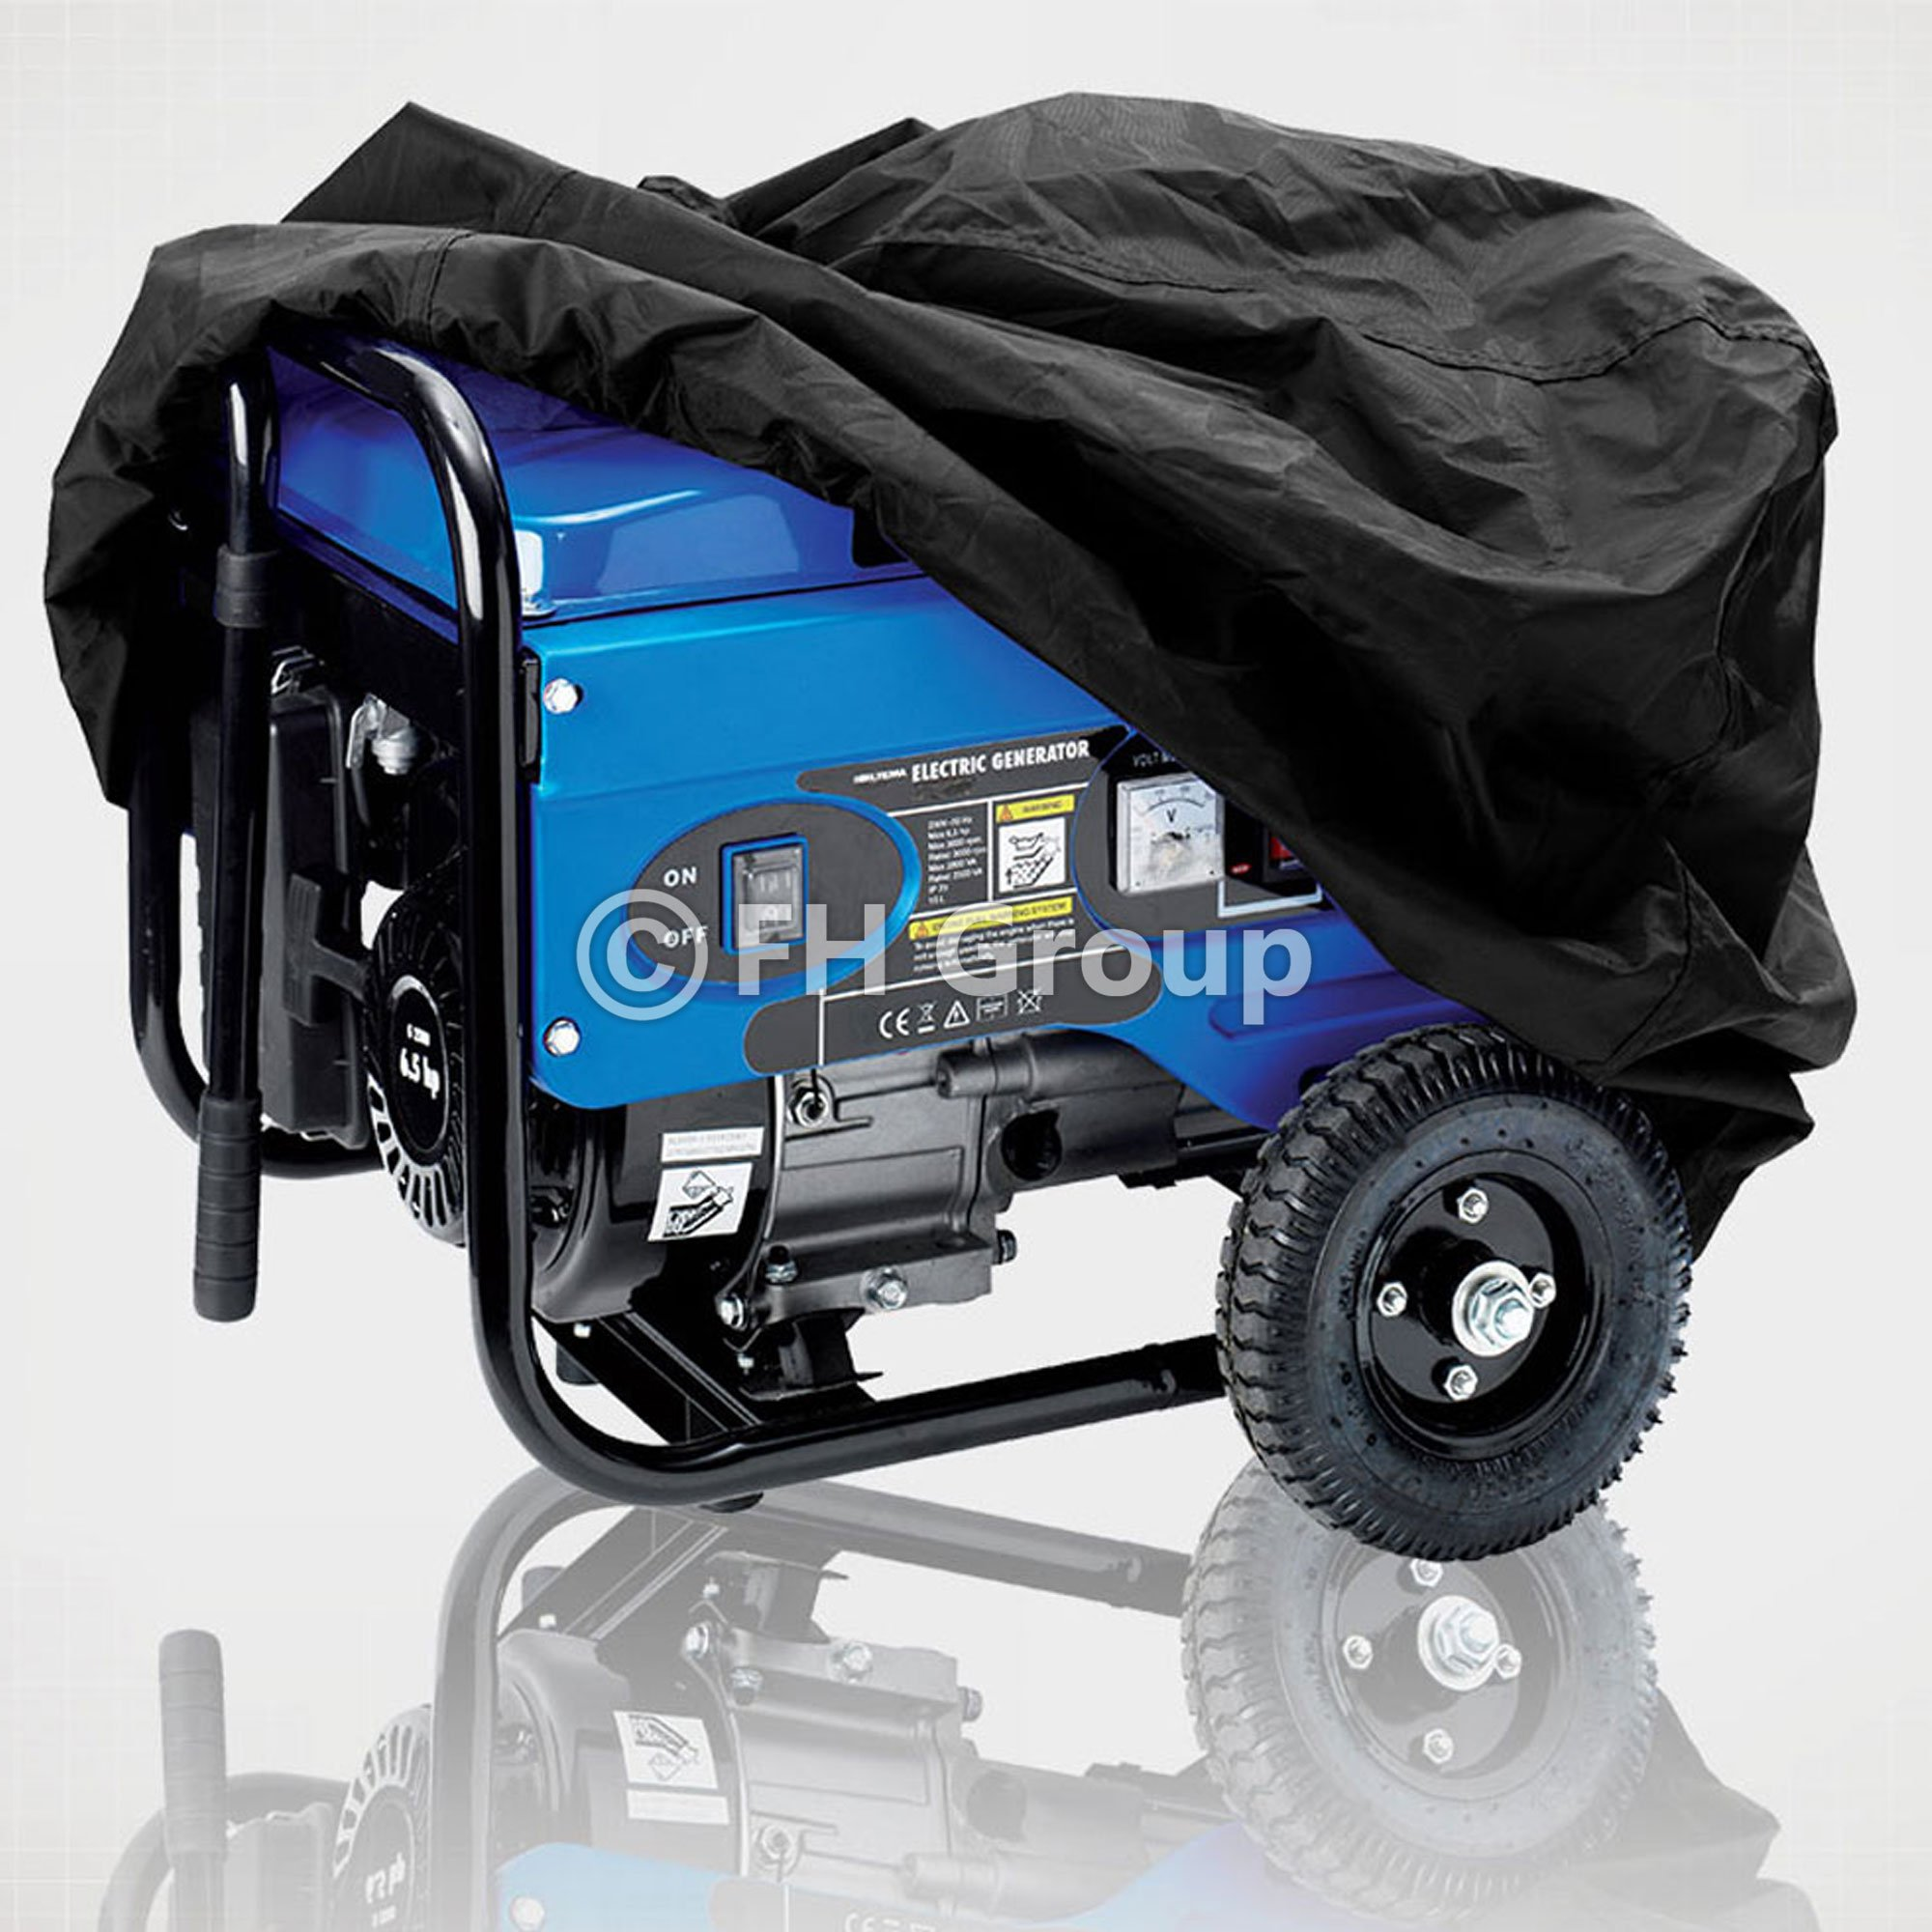 FH Group EC707 Universal Weatherproof Heavy Duty Generator Cover, Black Color M 24'' x 16.5'' x 16'' Black Color by FH Group